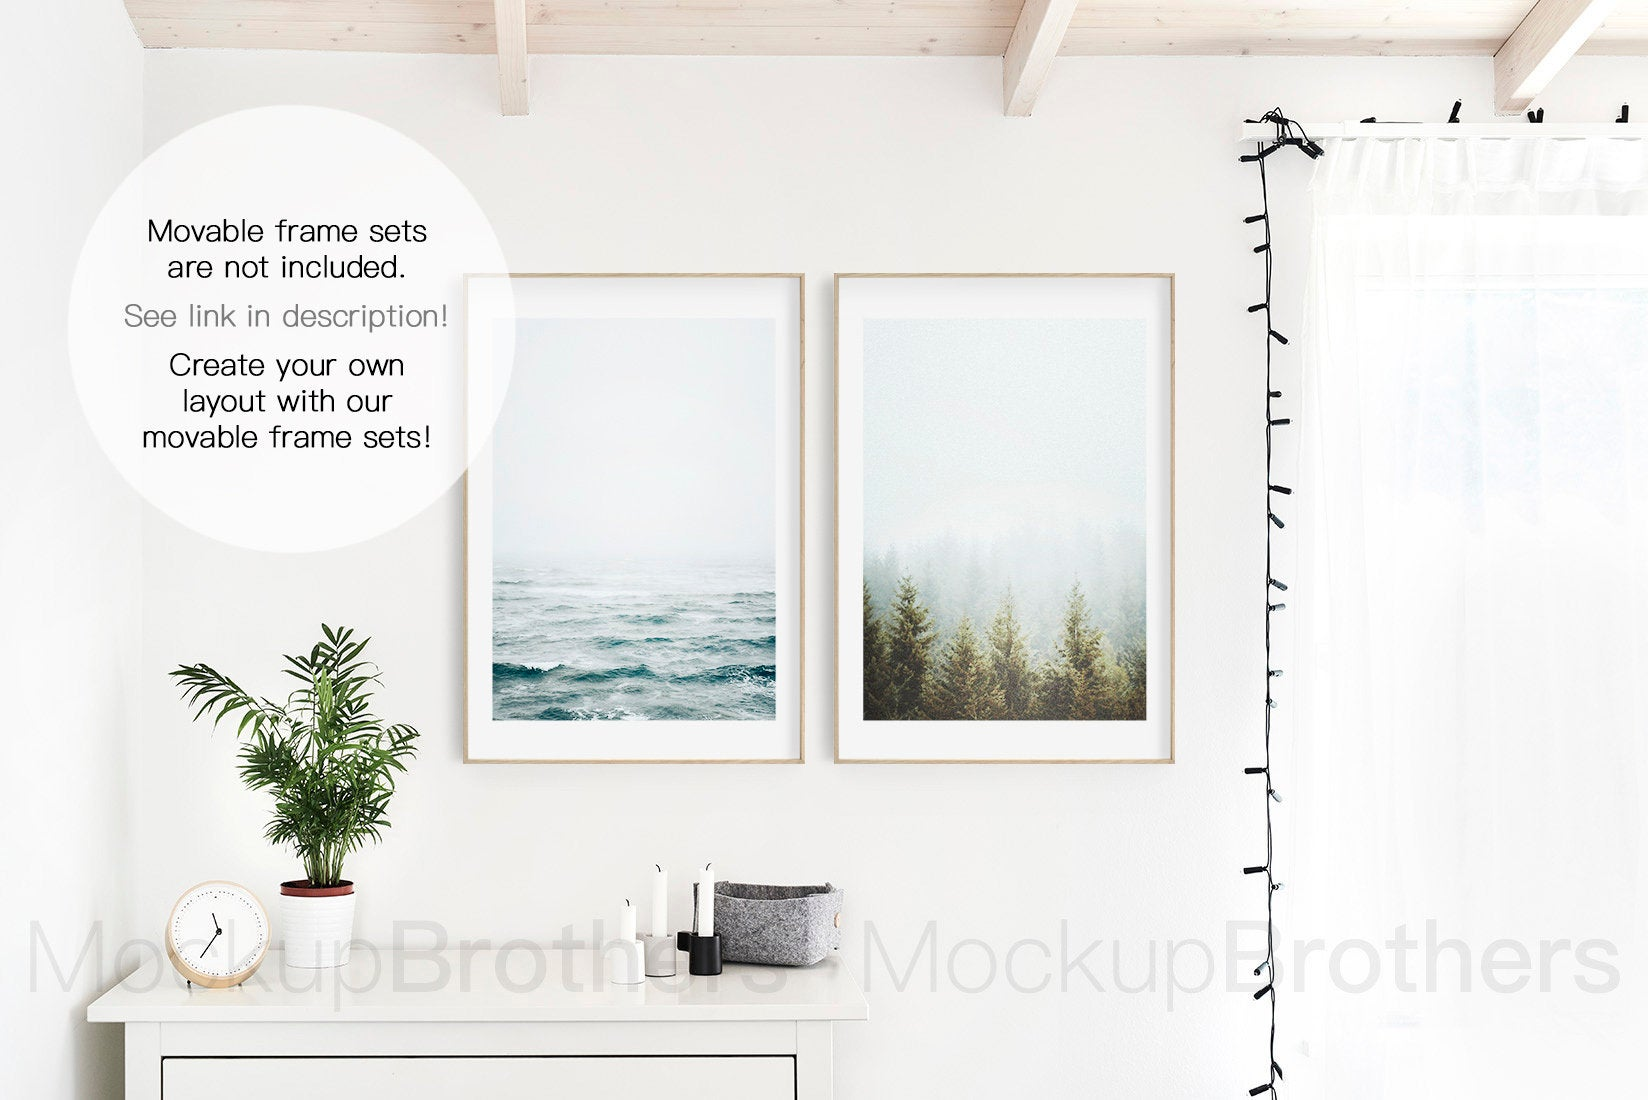 Frame mockup by Mockup Brothers